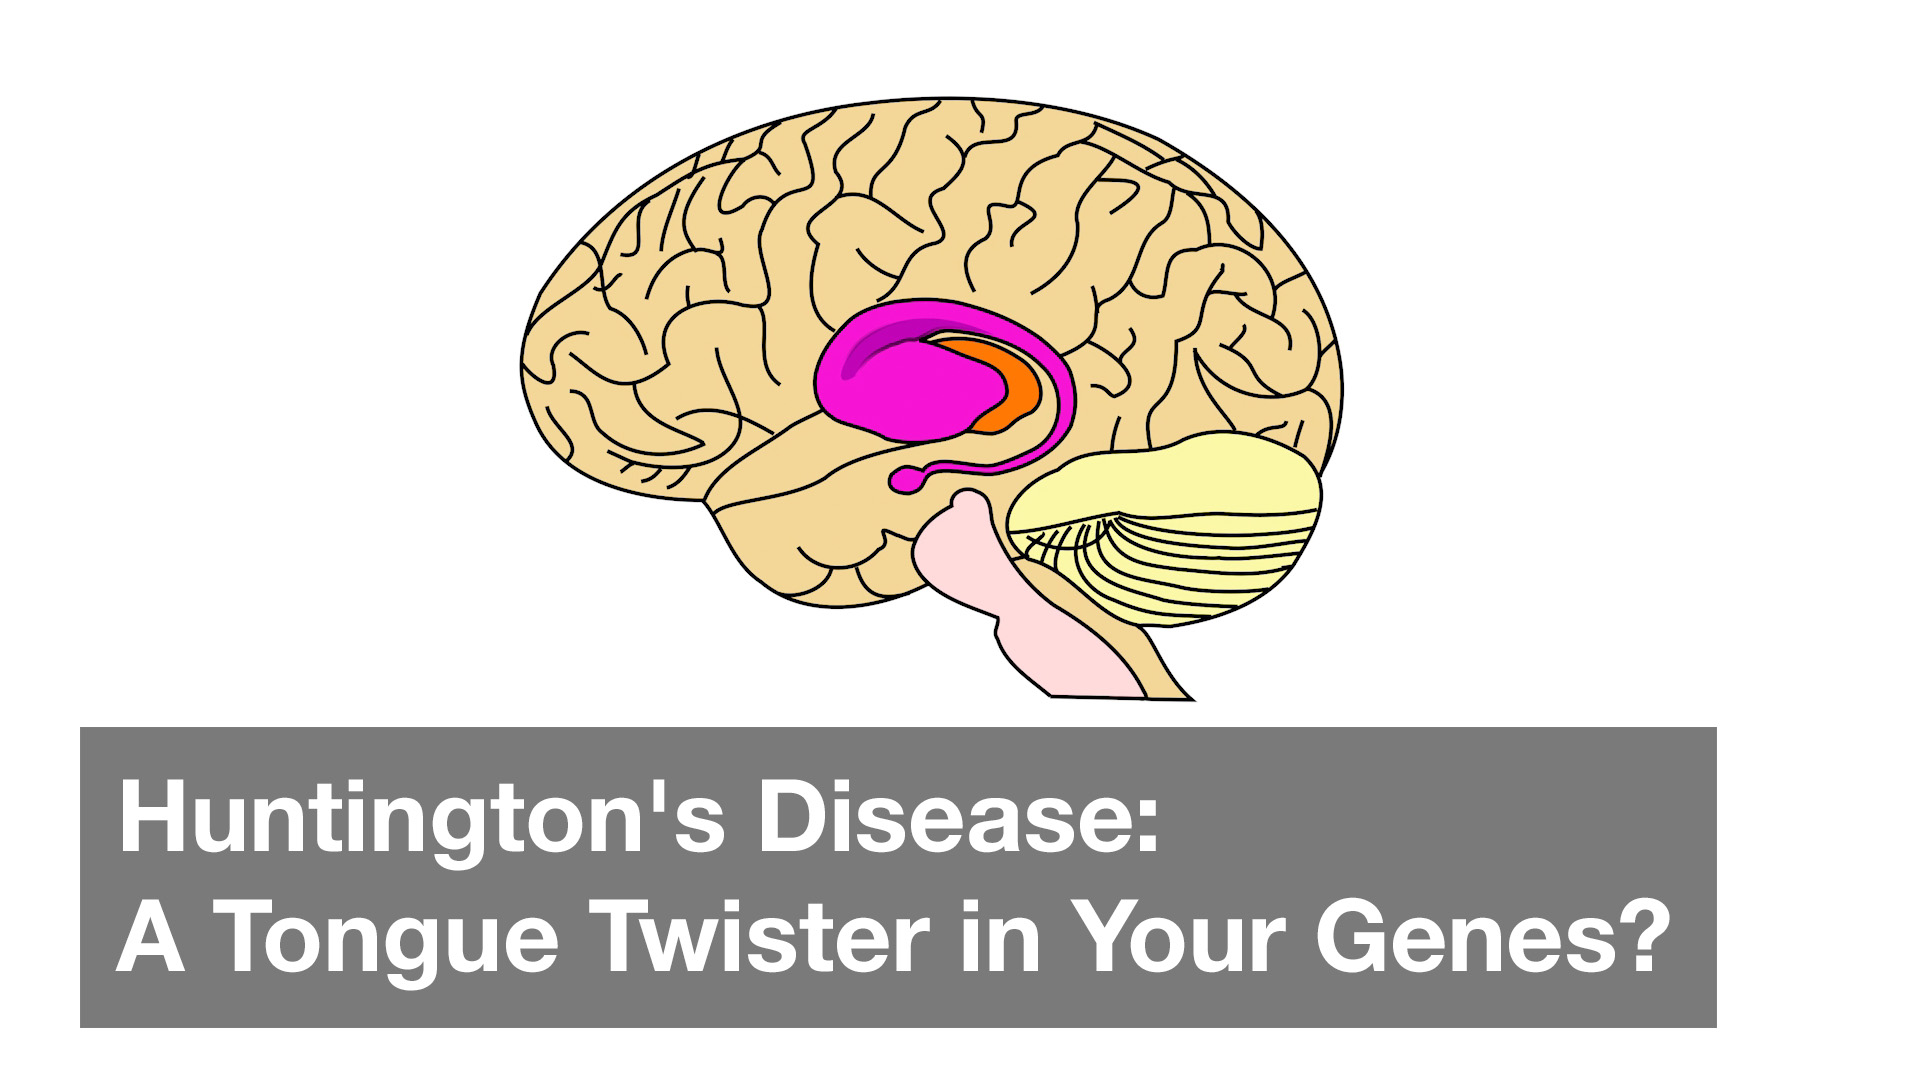 Huntington's Disease: A Tongue Twister in Your Genes?